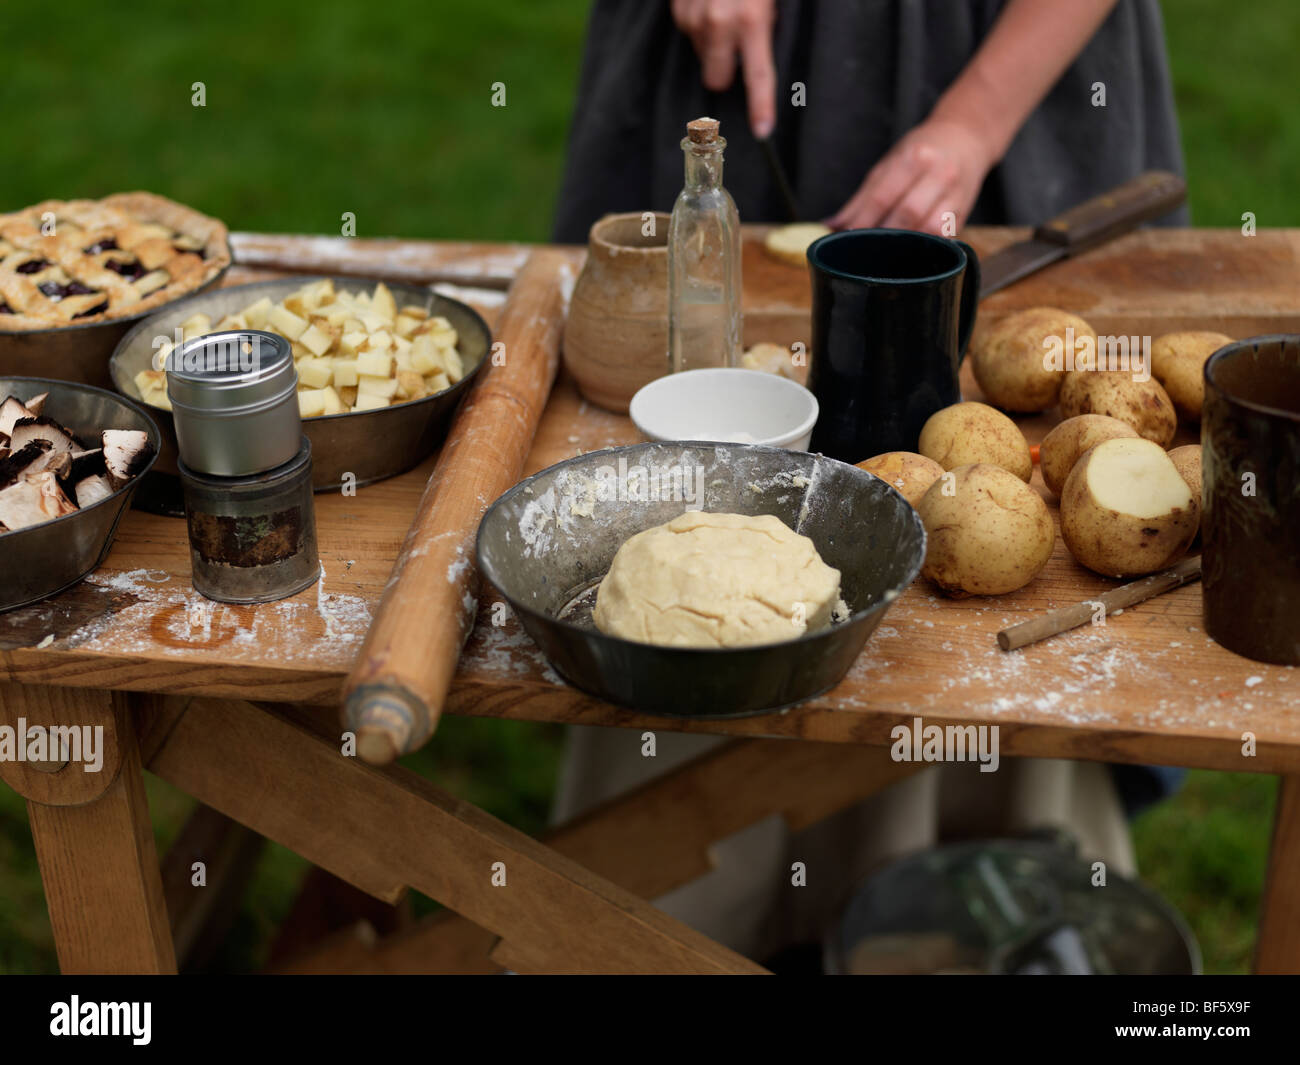 Canada, Ontario, Fort Erie, Old Fort Erie, War of 1812 reenactors in period costume preparing an old fashion meal - Stock Image